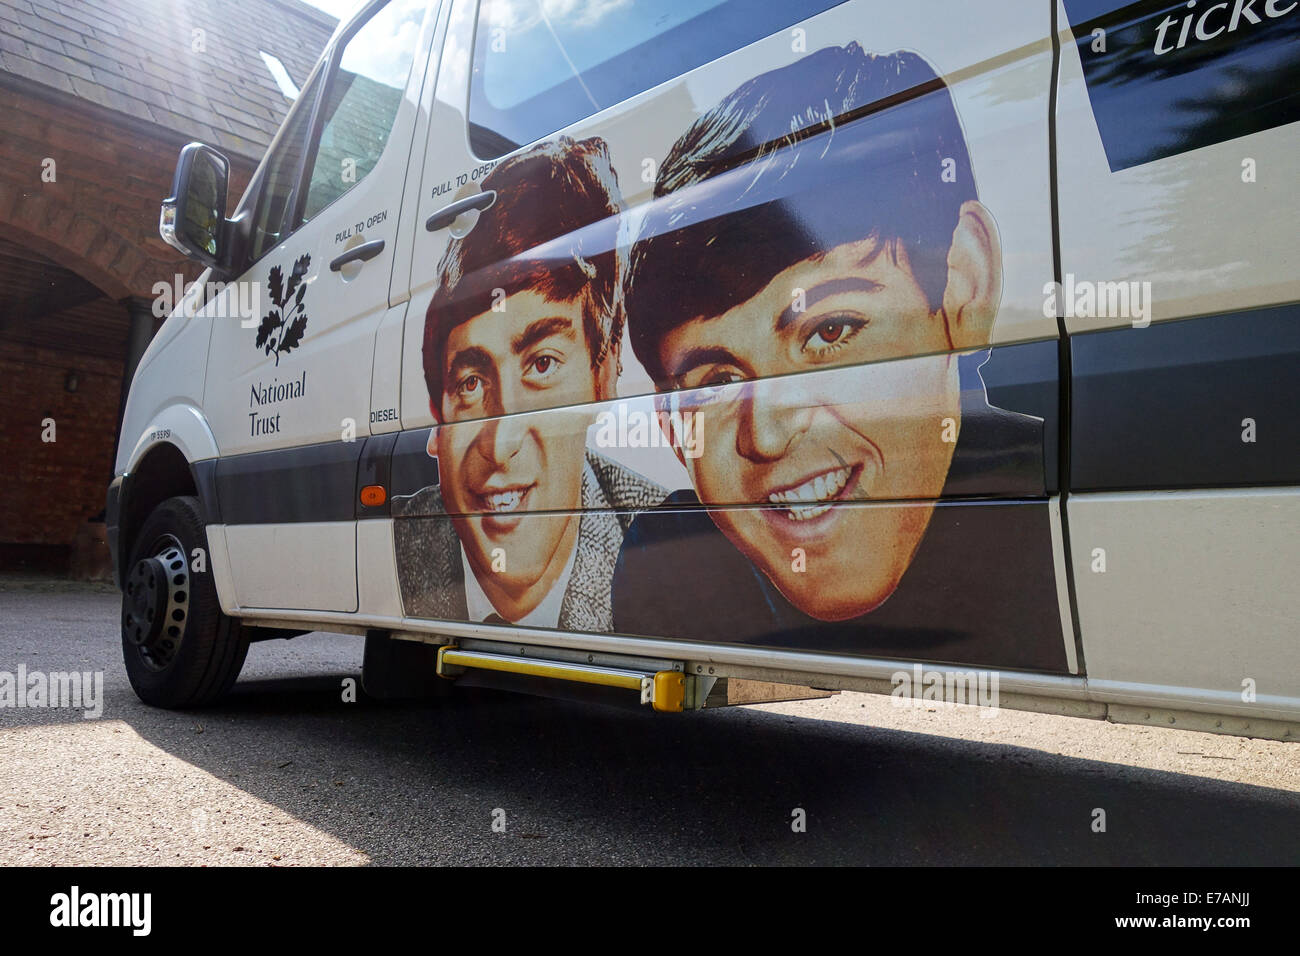 National Trust minibus with portraits of The Beatles John Lennon & Paul McCartney for taking visitors to their - Stock Image